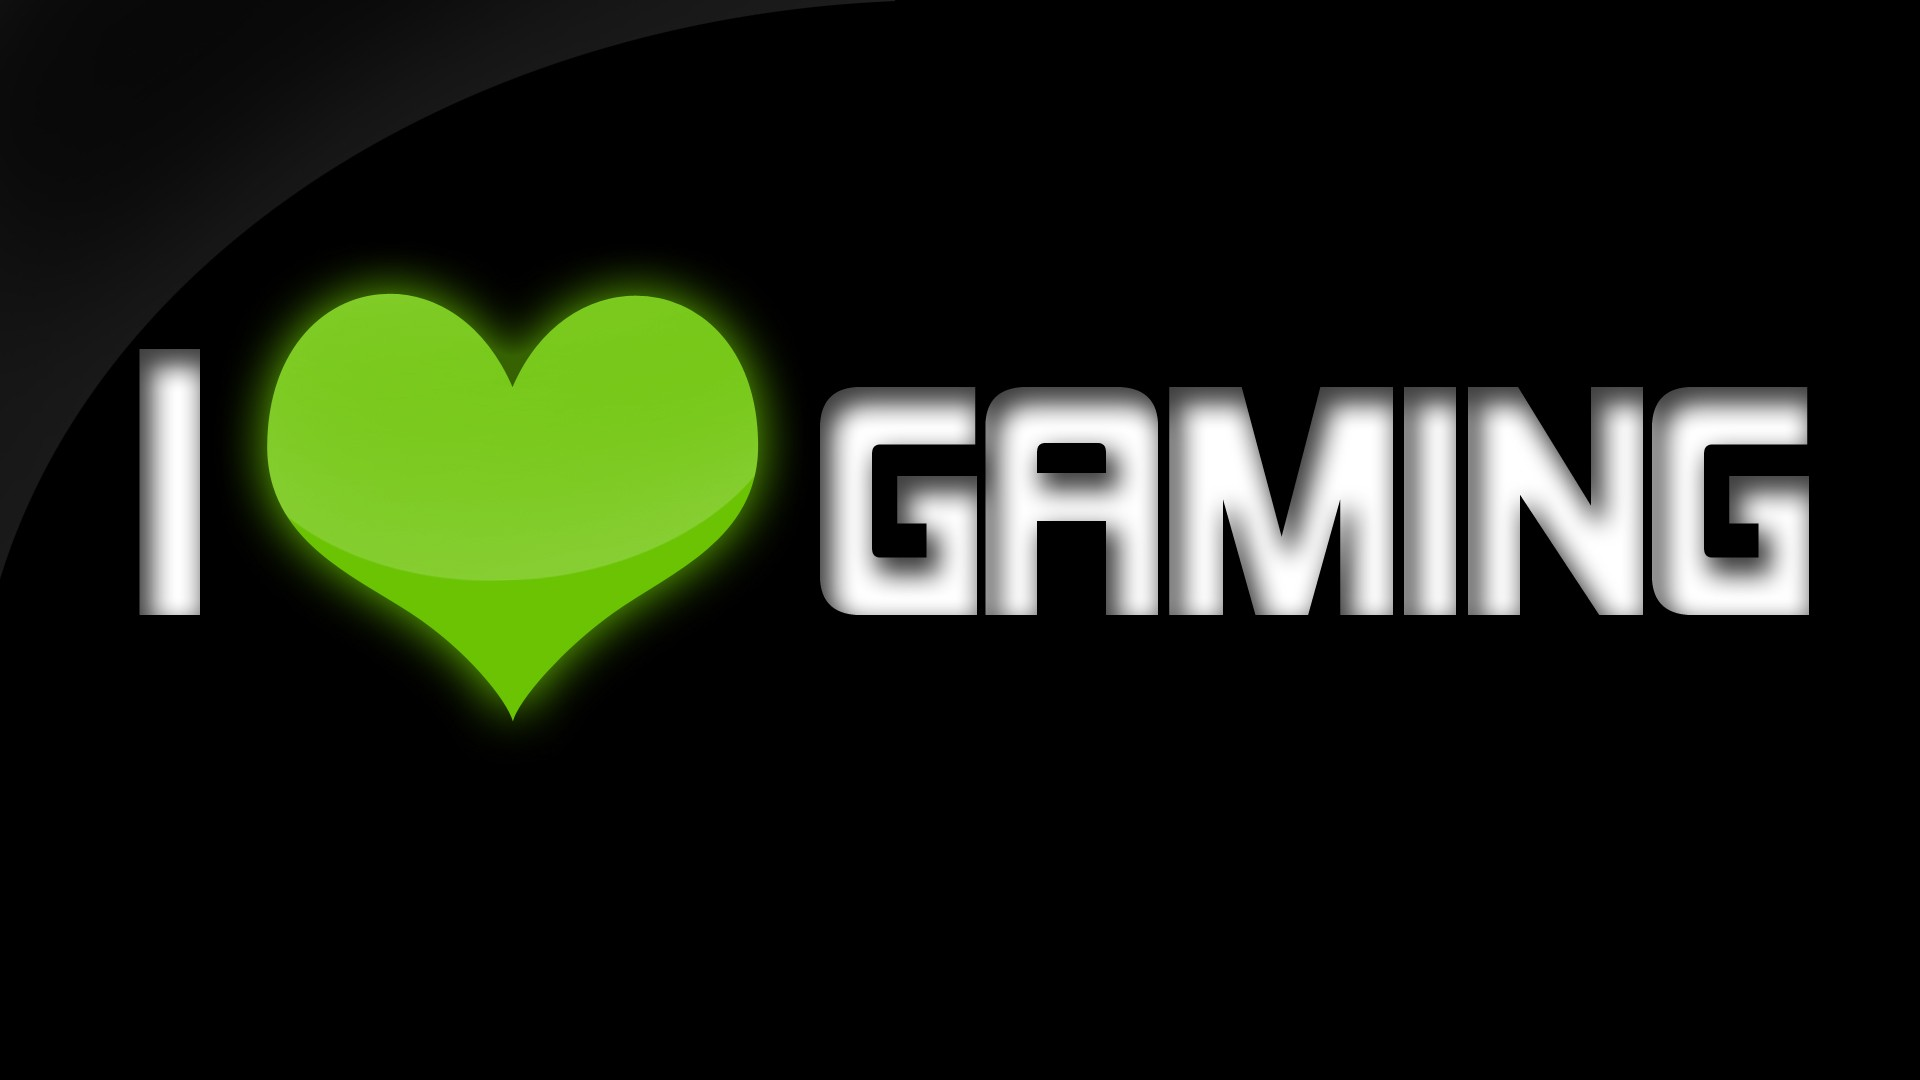 Gaming Wallpapers I Love Gaming Myspace Backgrounds I Love Gaming 1920x1080